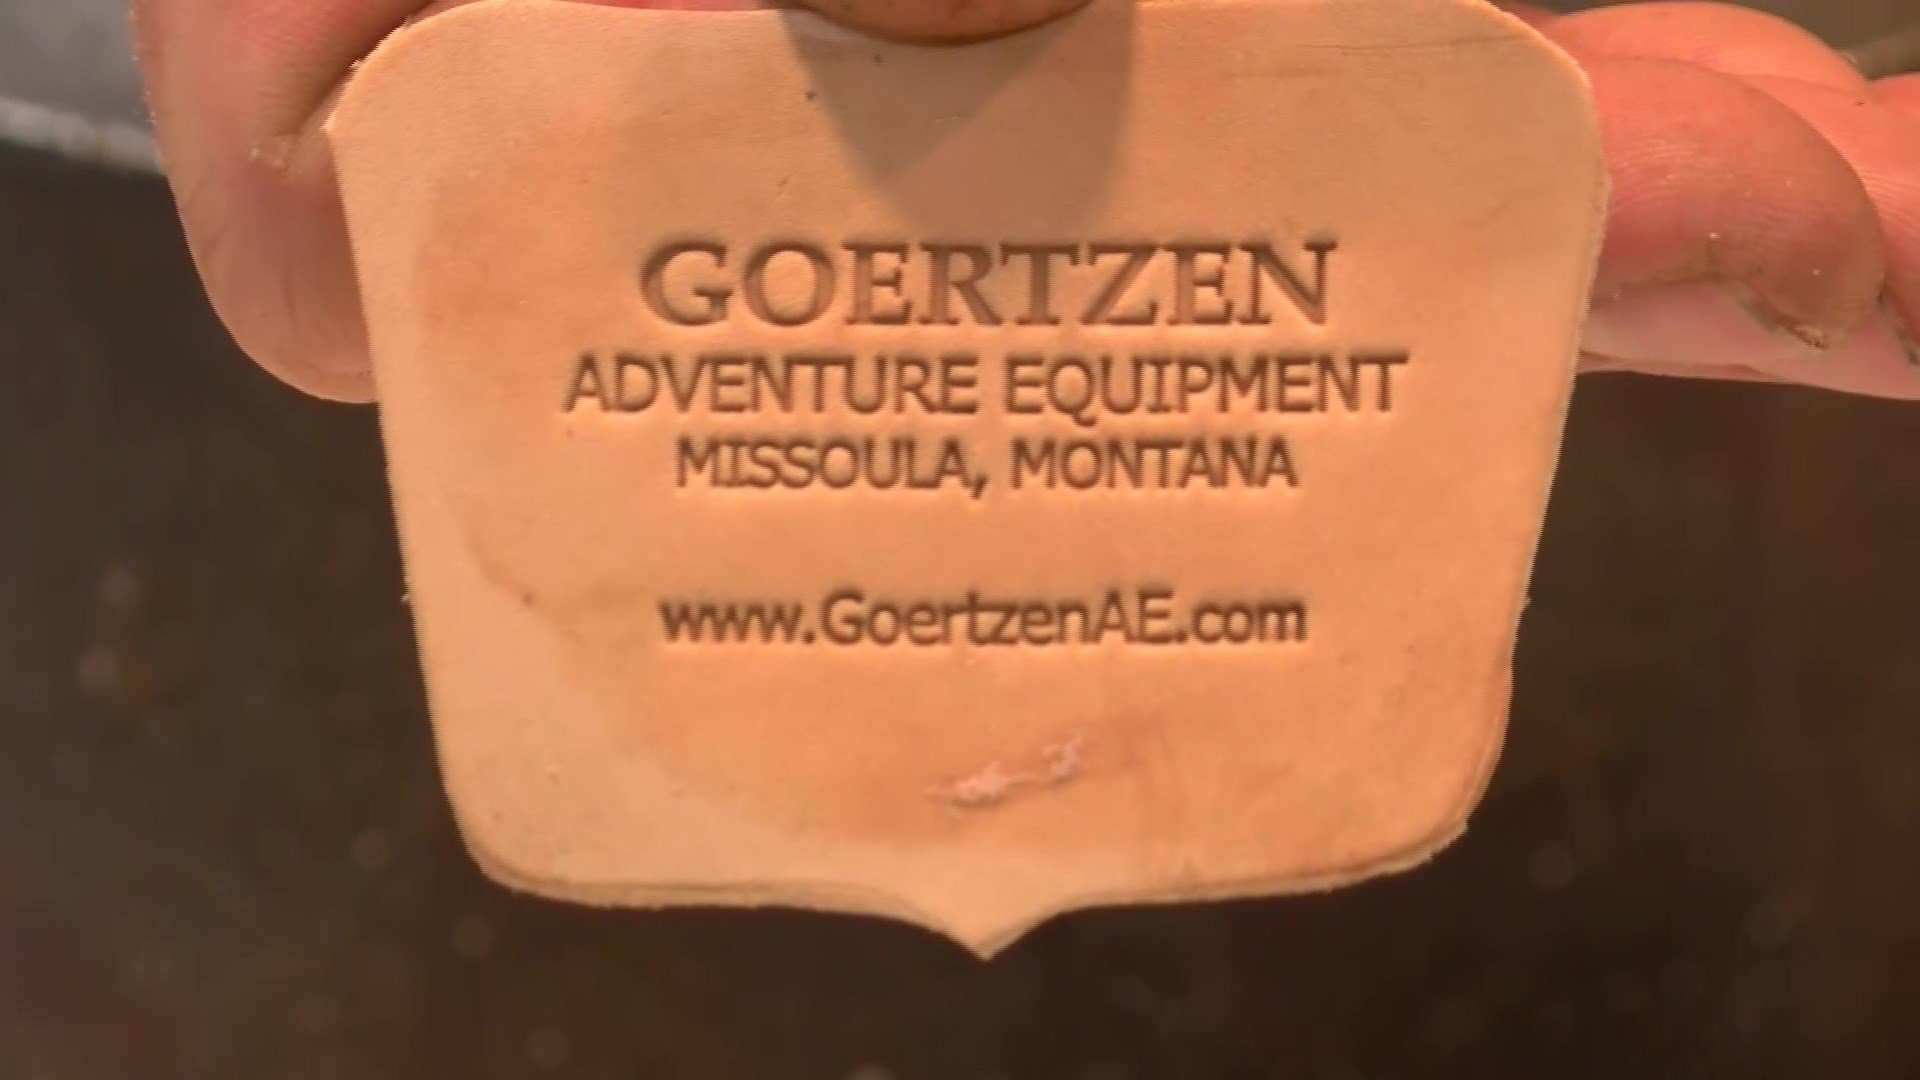 Goertzen Adventure Equipment